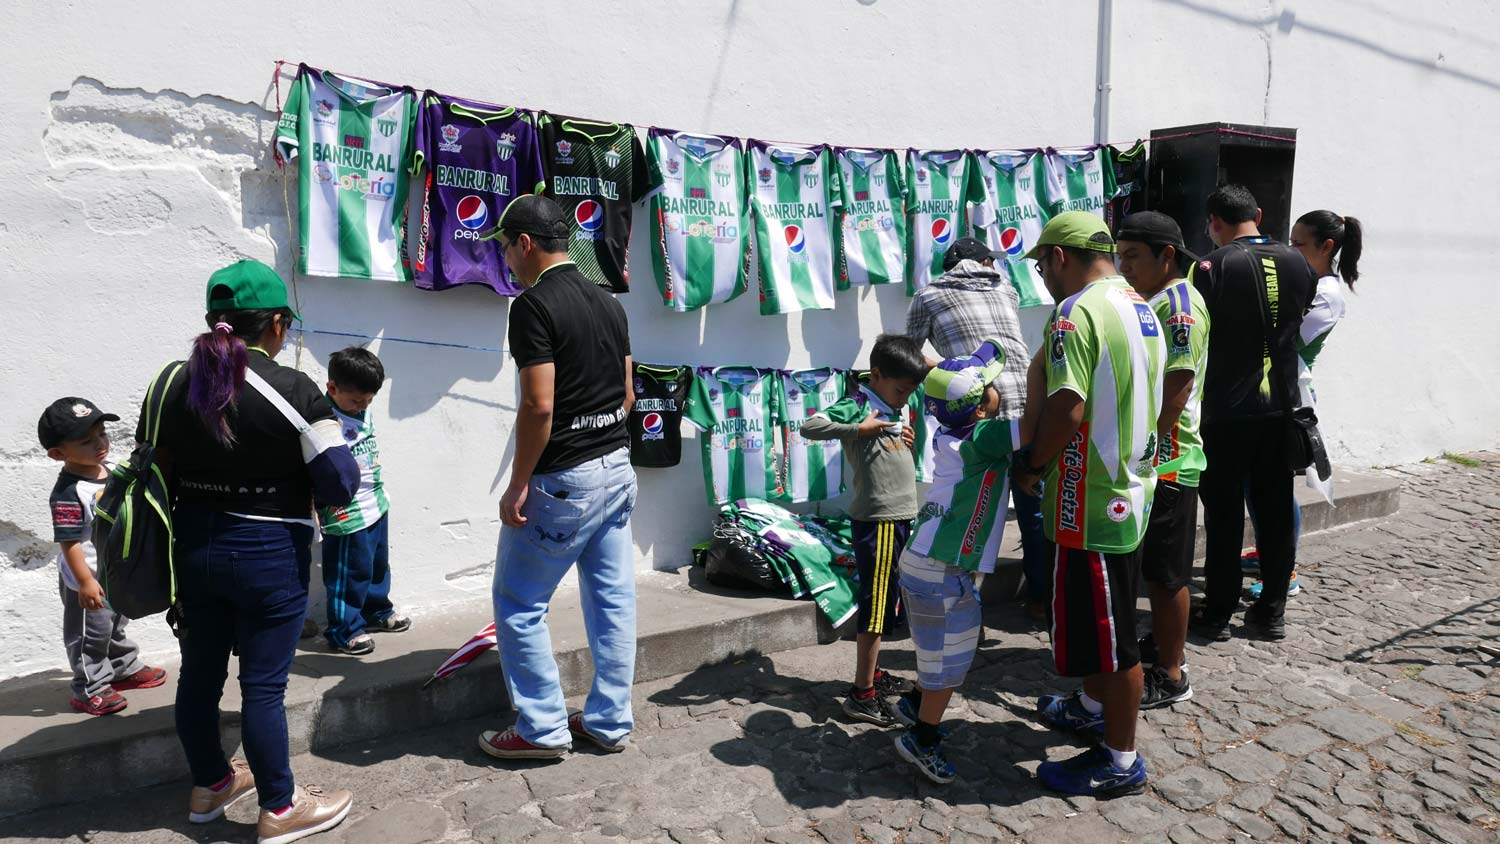 Selling shirts of the local club in Antigua Guatemala